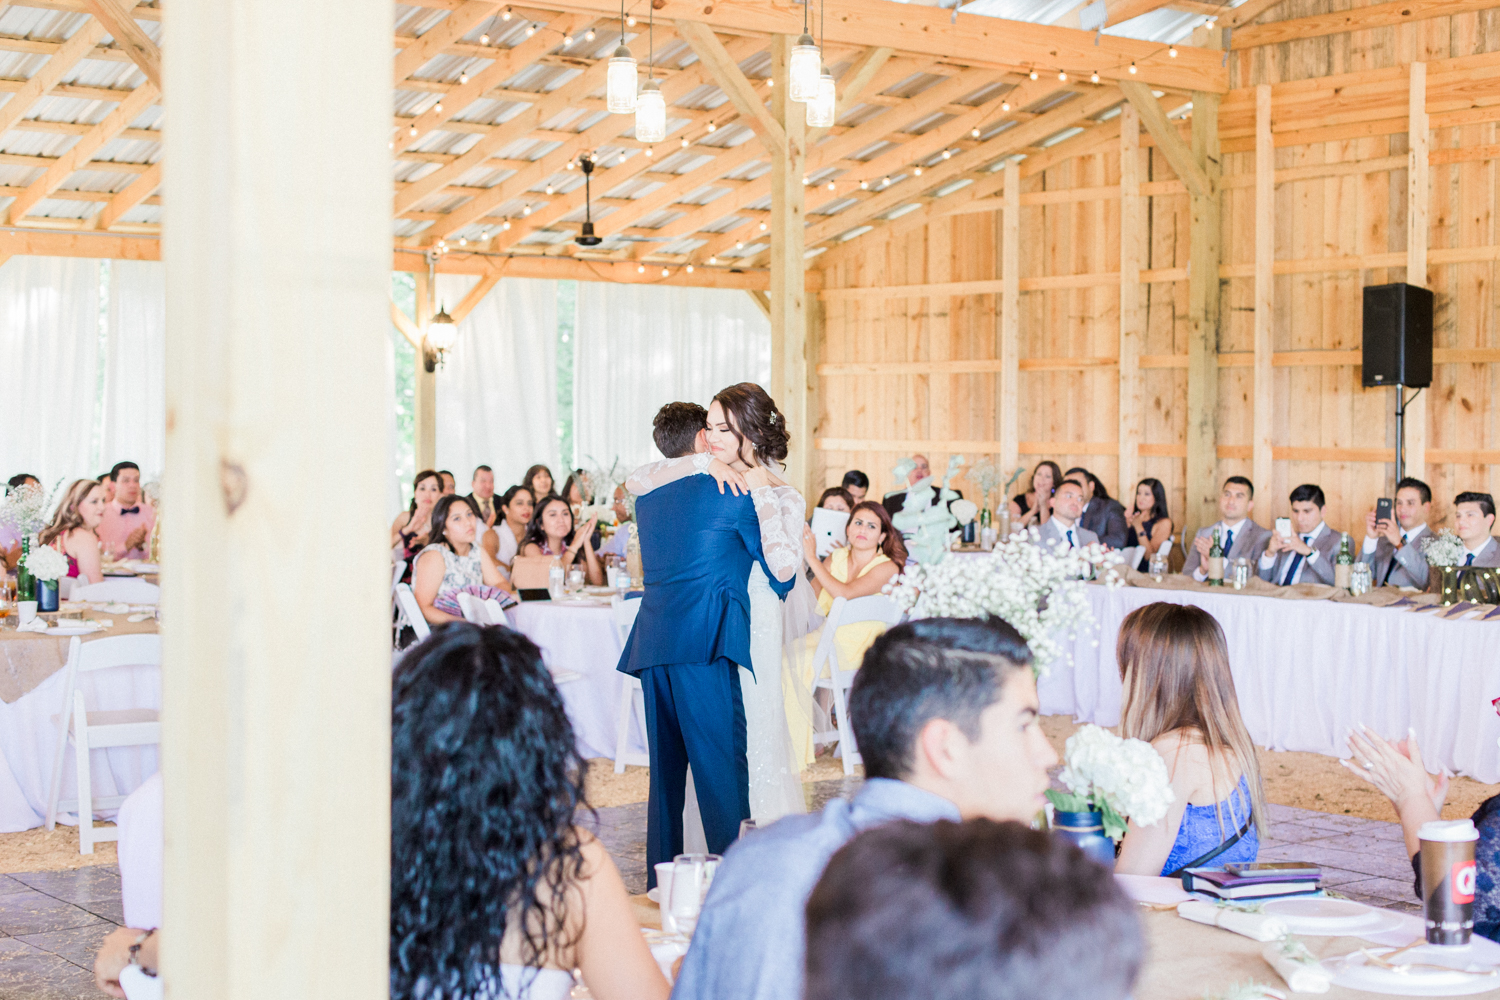 First dance as husband and wife under hanging mason jar lights in a barn with a tin roof. Summer, outdoor, barn wedding in north Georgia at Hays McDonald Farm in Jefferson, Georgia. Photo by Kesia Marie Photography- Fine Art Wedding Photographer.